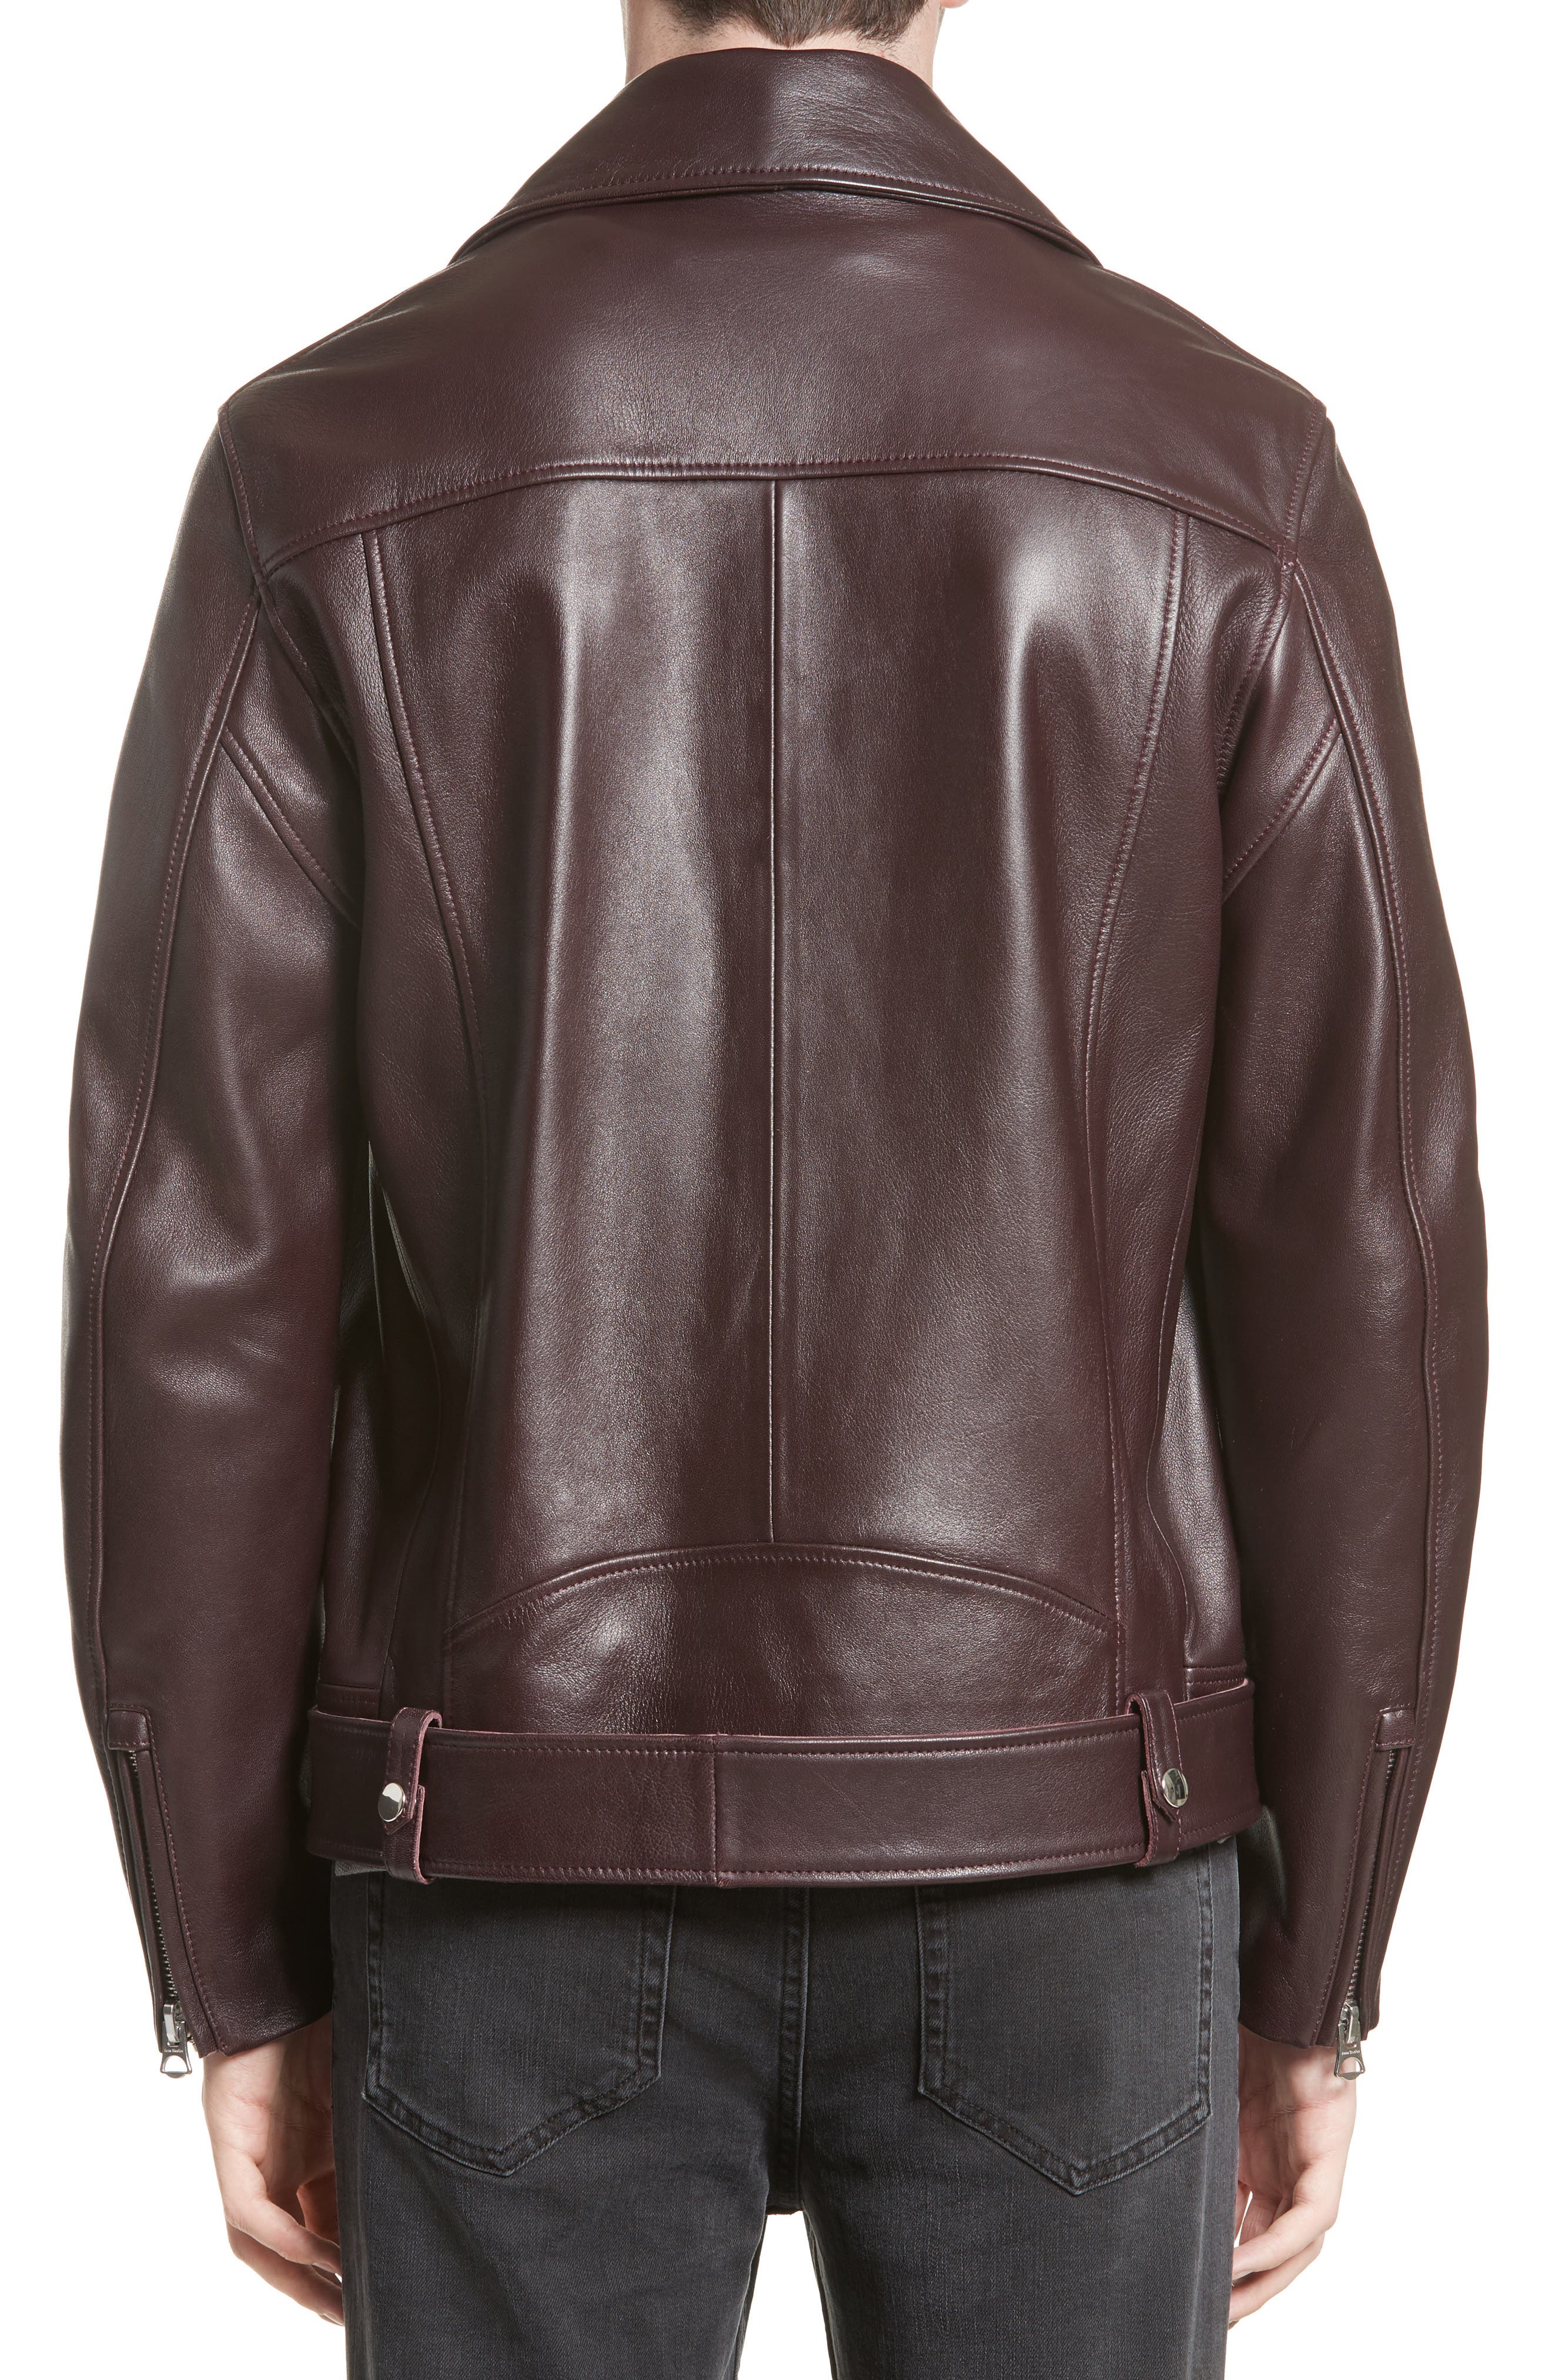 Acne Nate Leather Jacket,                             Alternate thumbnail 2, color,                             600